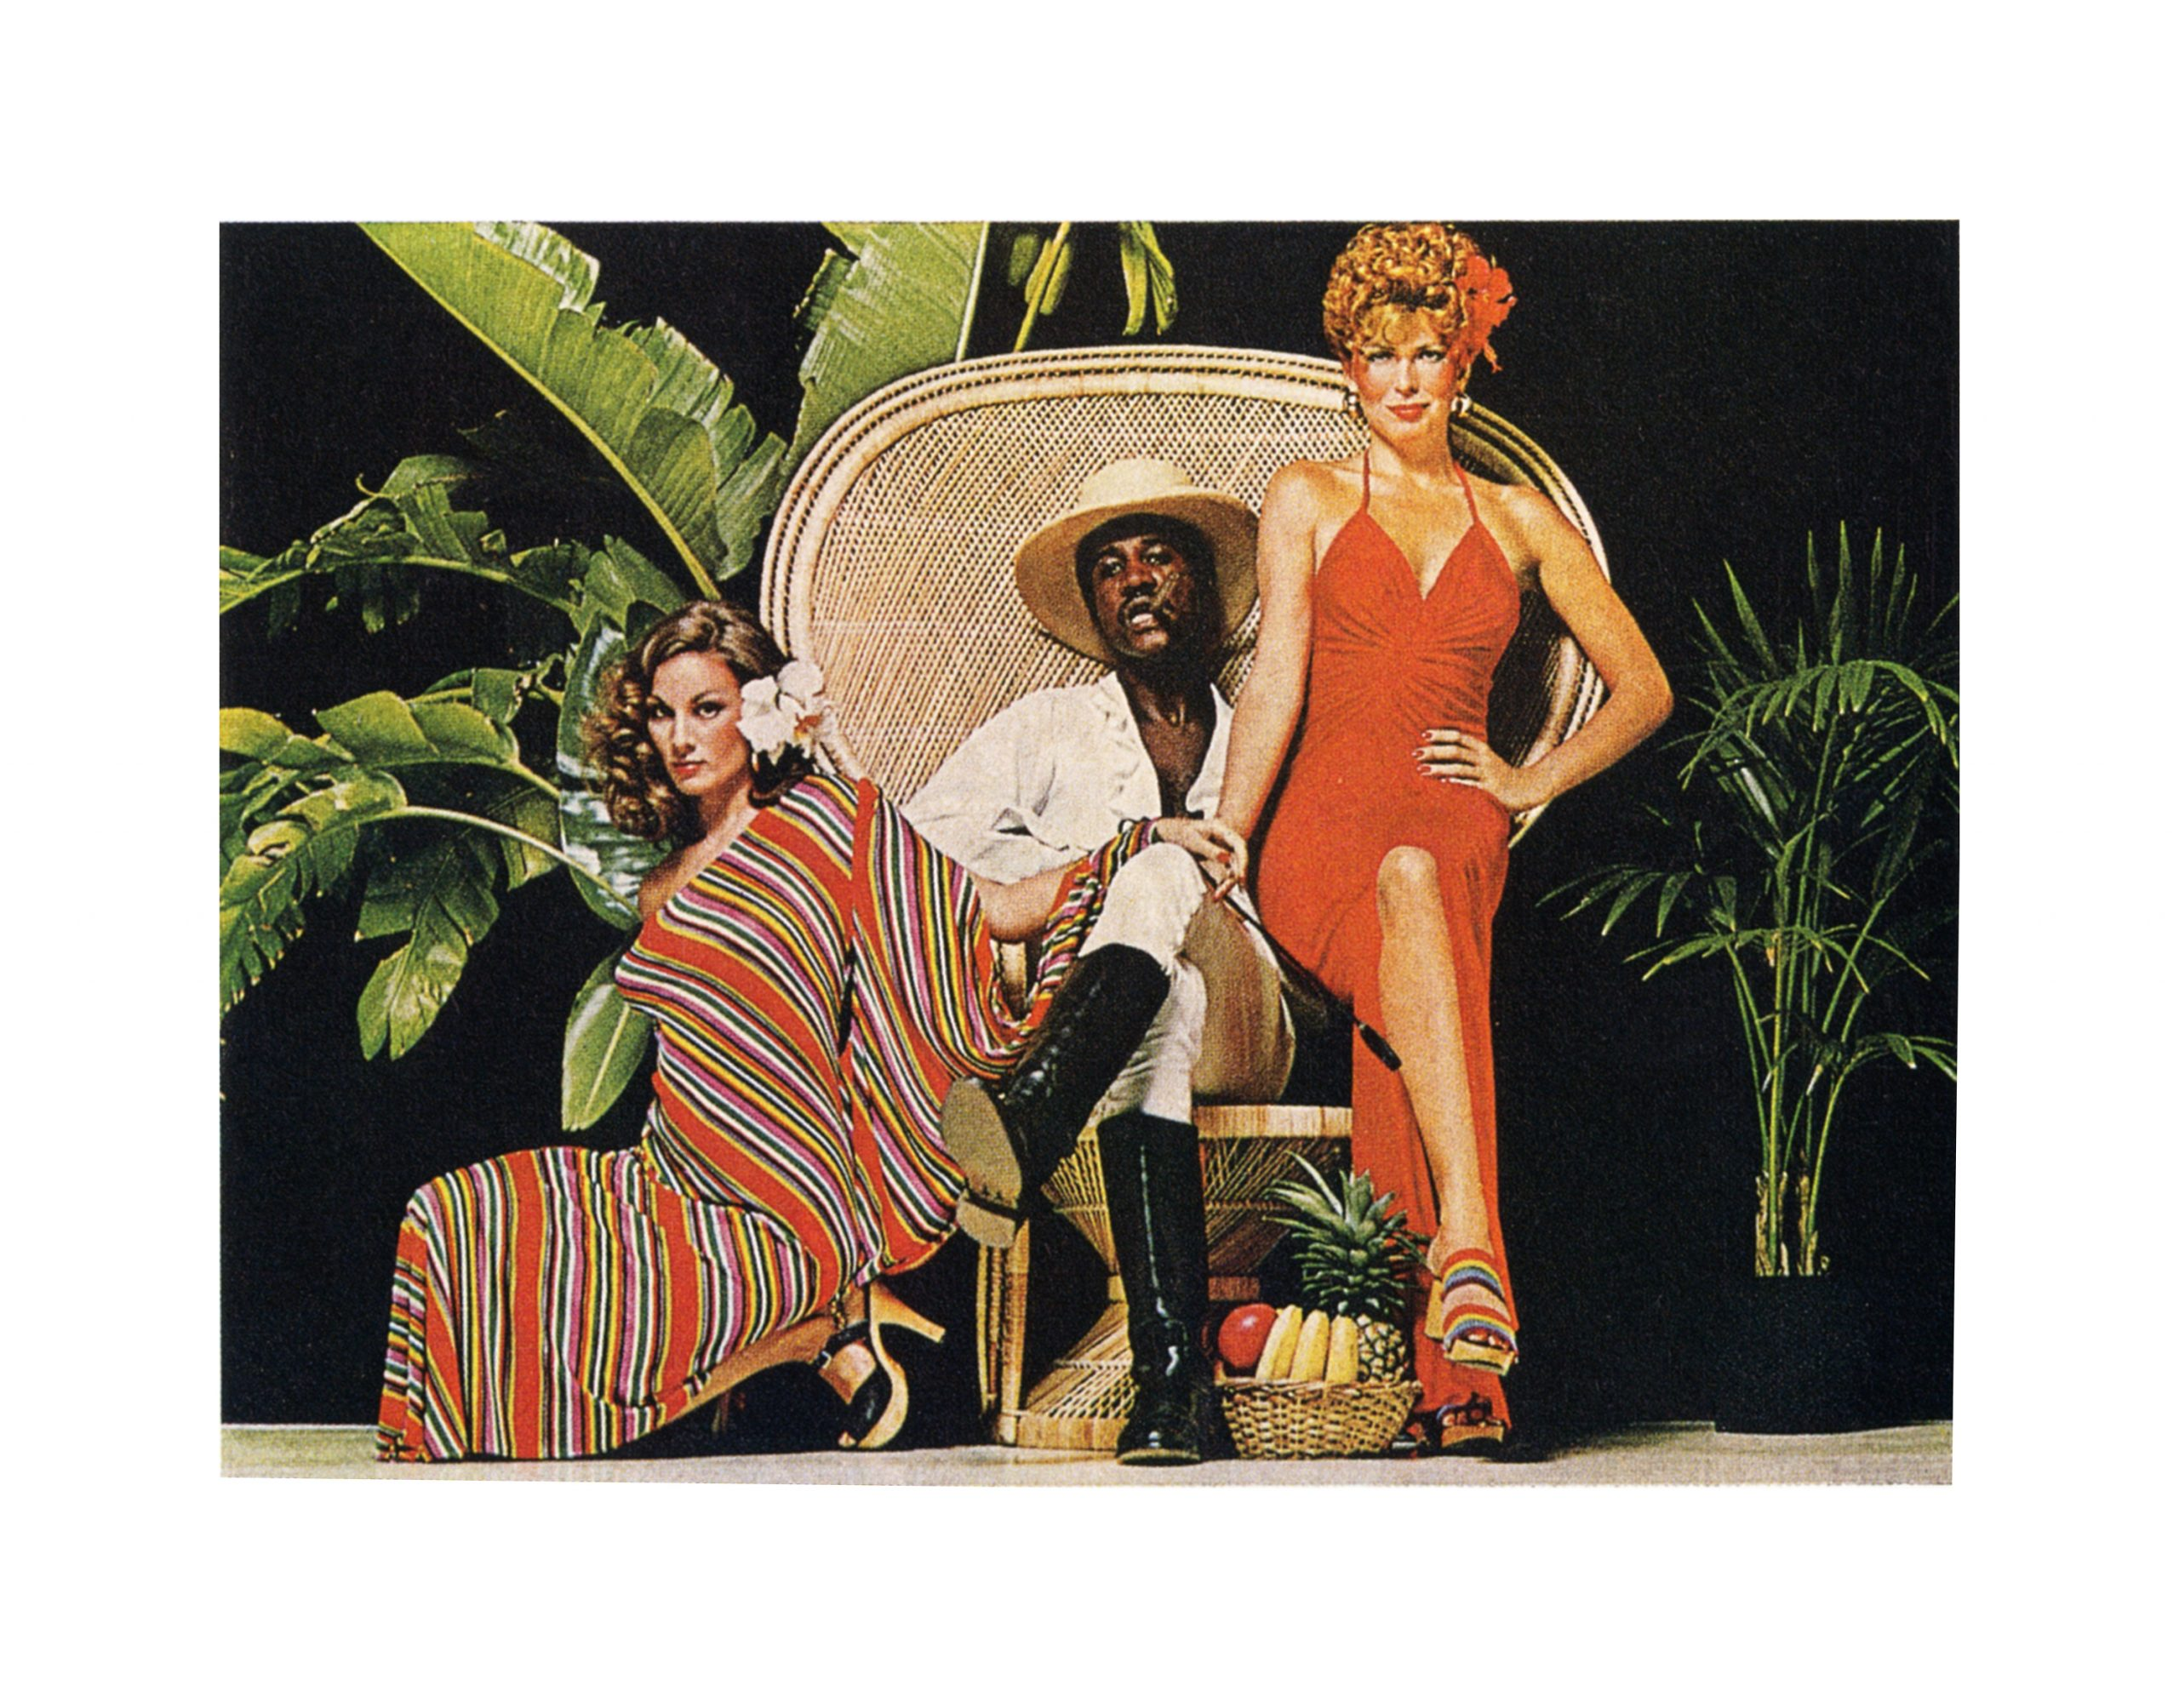 Hank Willis Thomas, <em>Are You the Right Kind of Woman for It?</em> 1974/2007